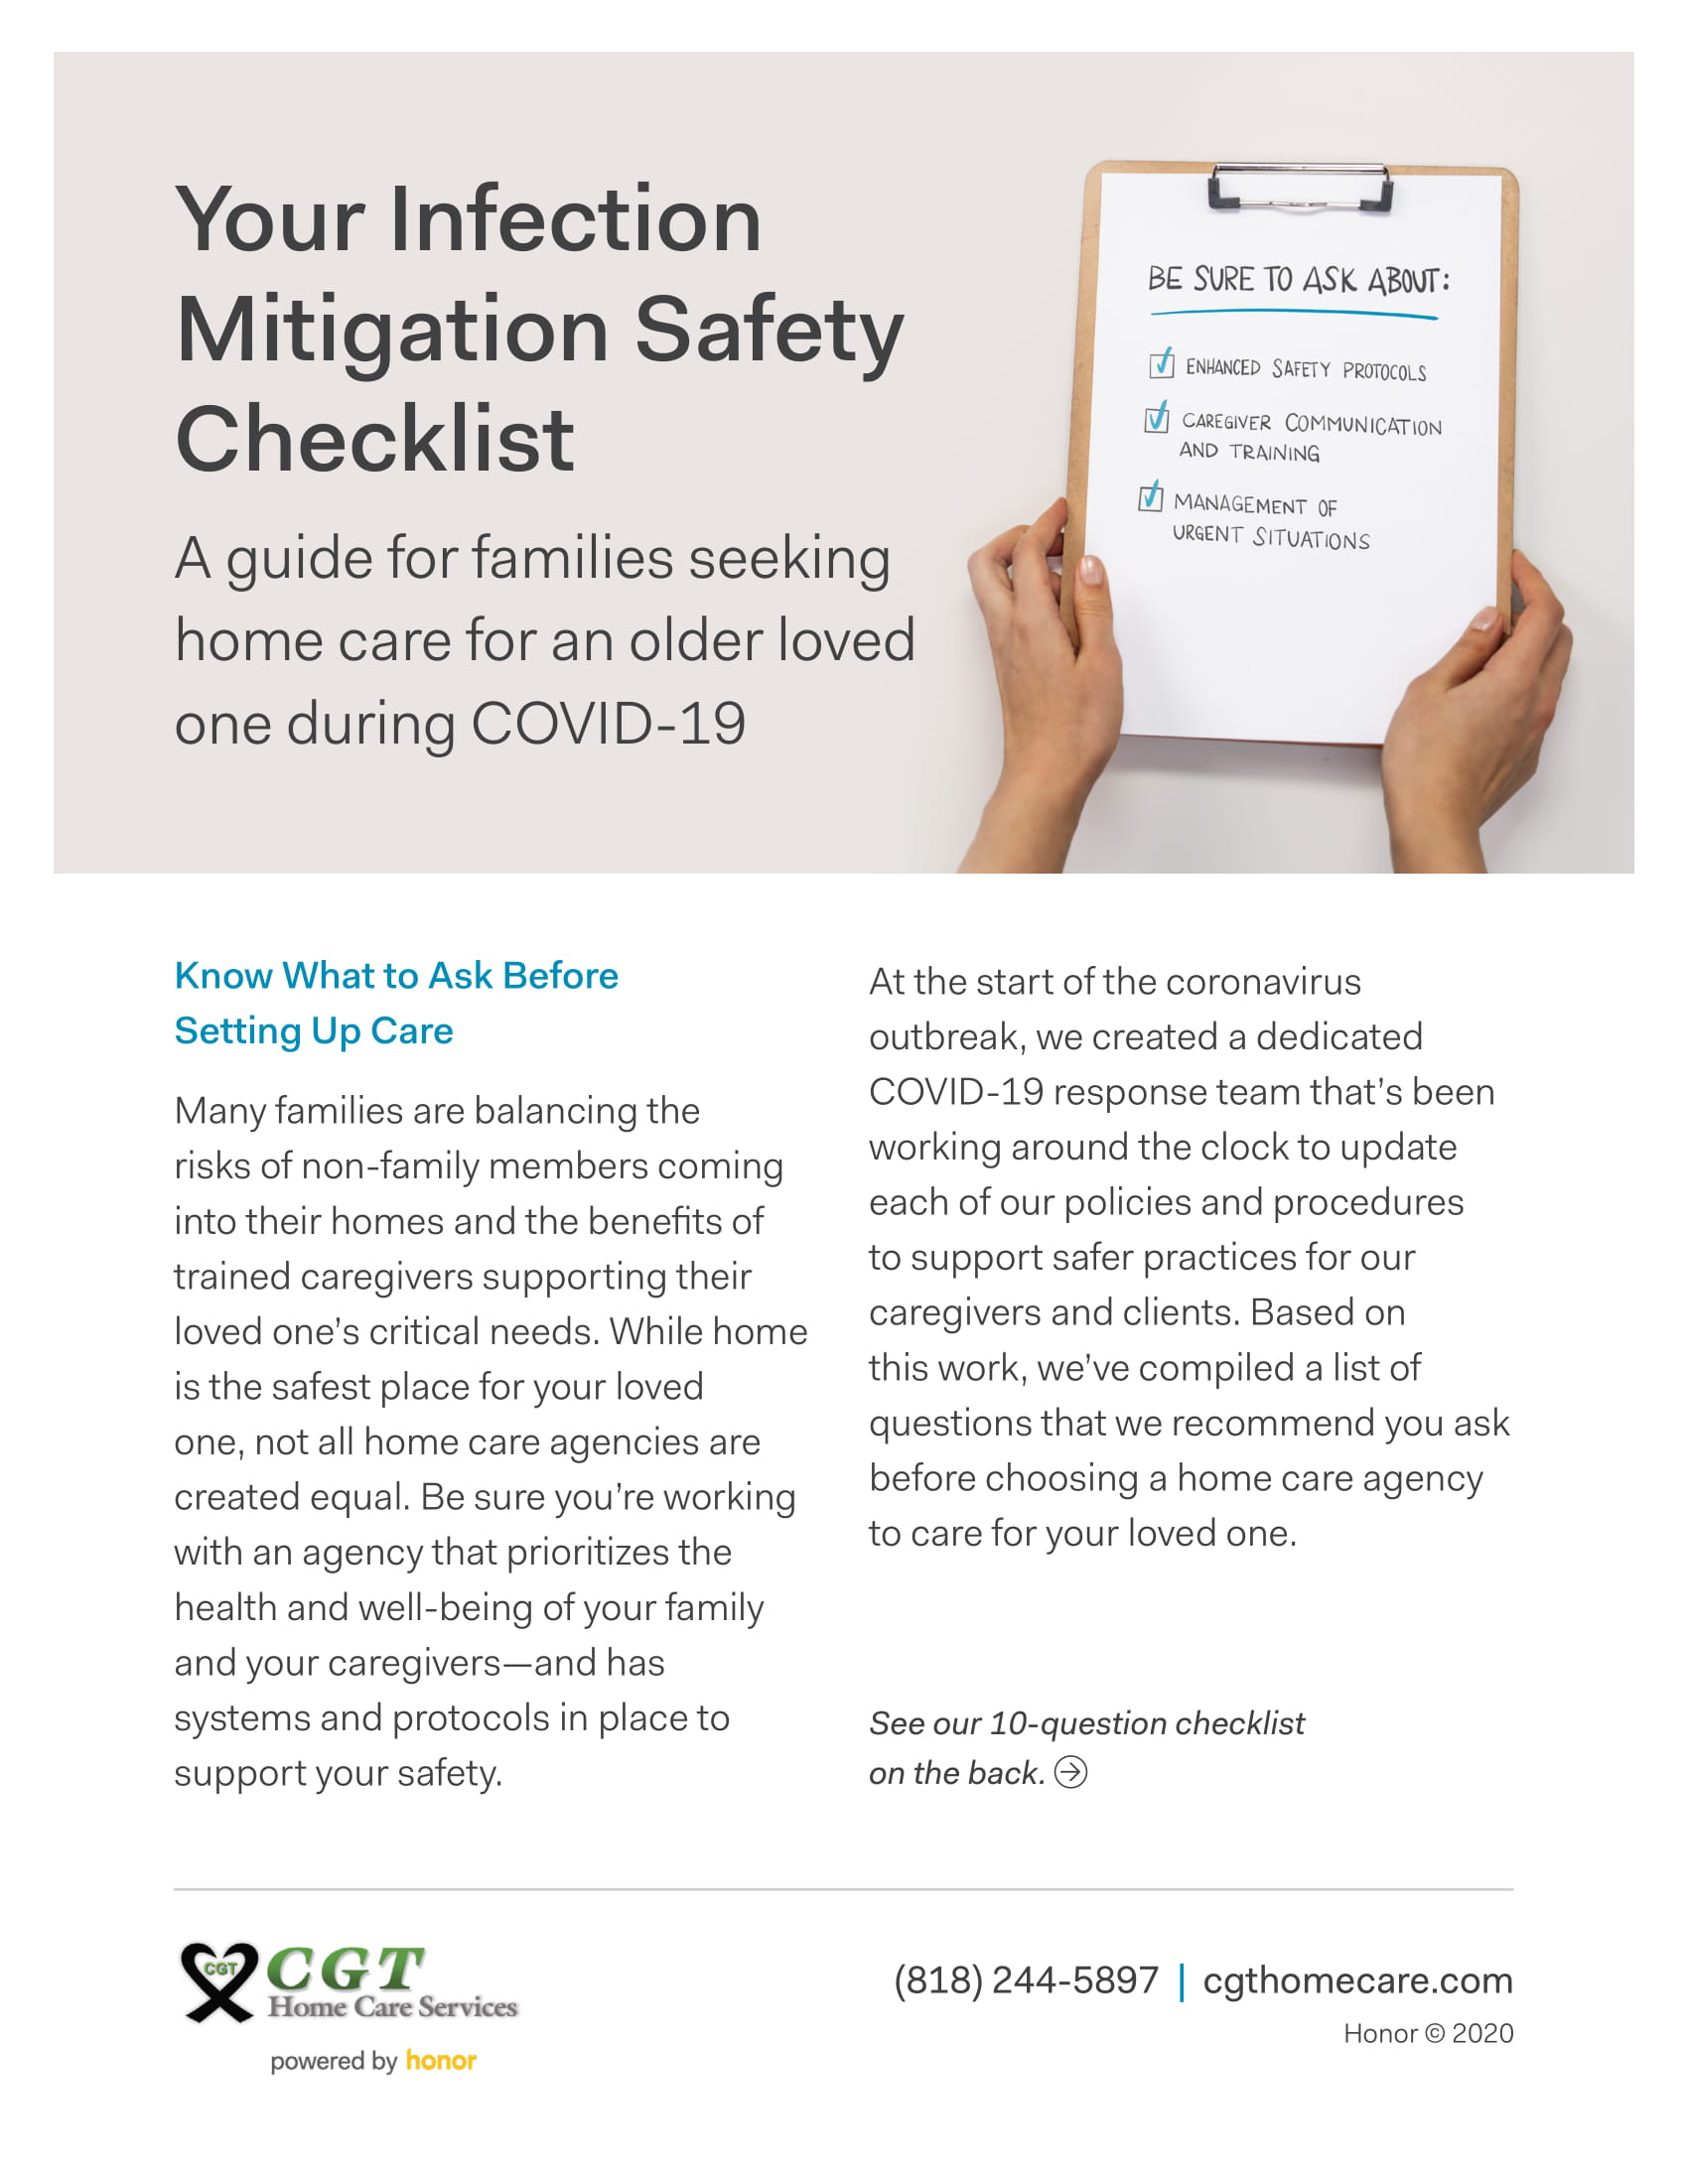 Your Infection Mitigation Safety Checklist